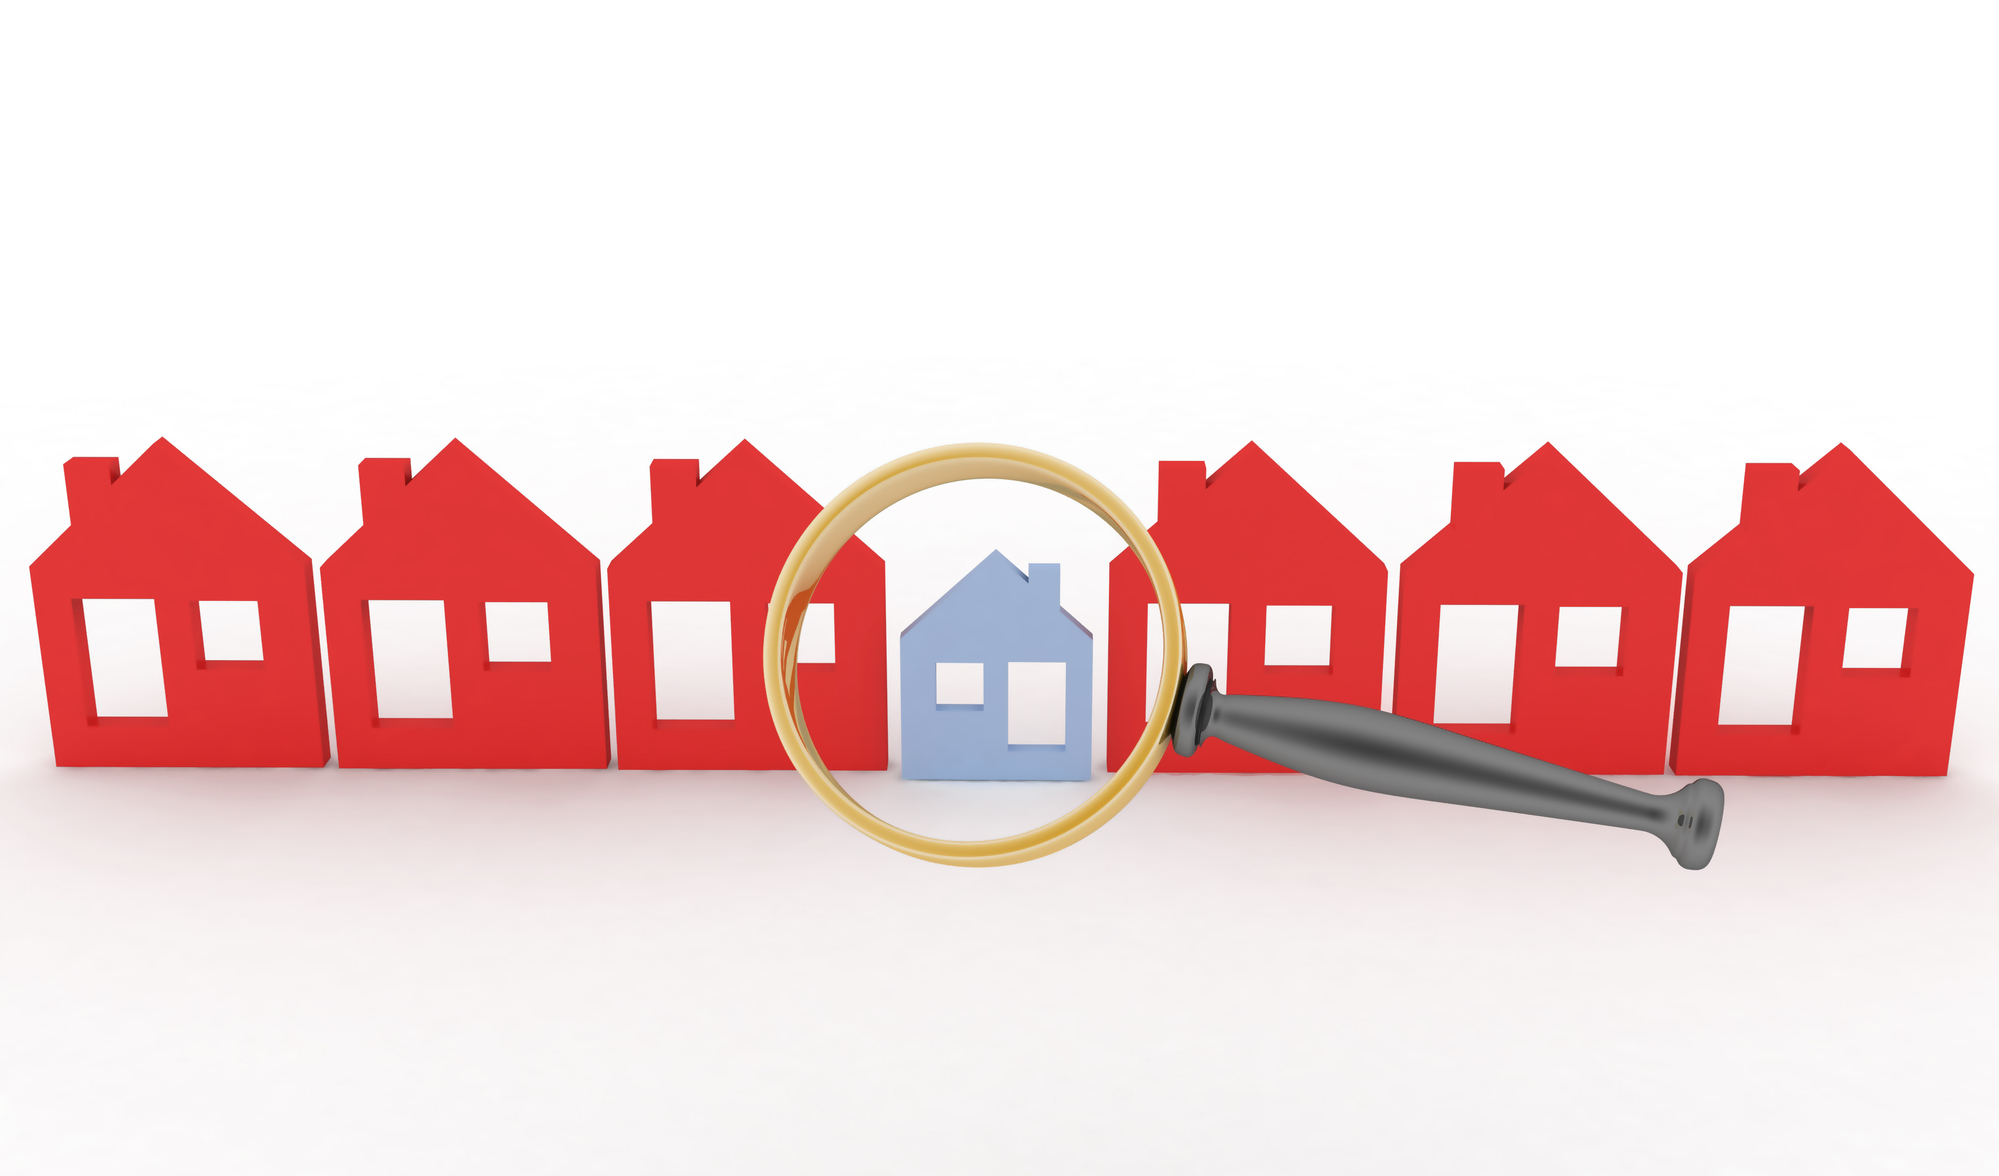 Magnifying glass selects or inspects a home in a row of houses-1